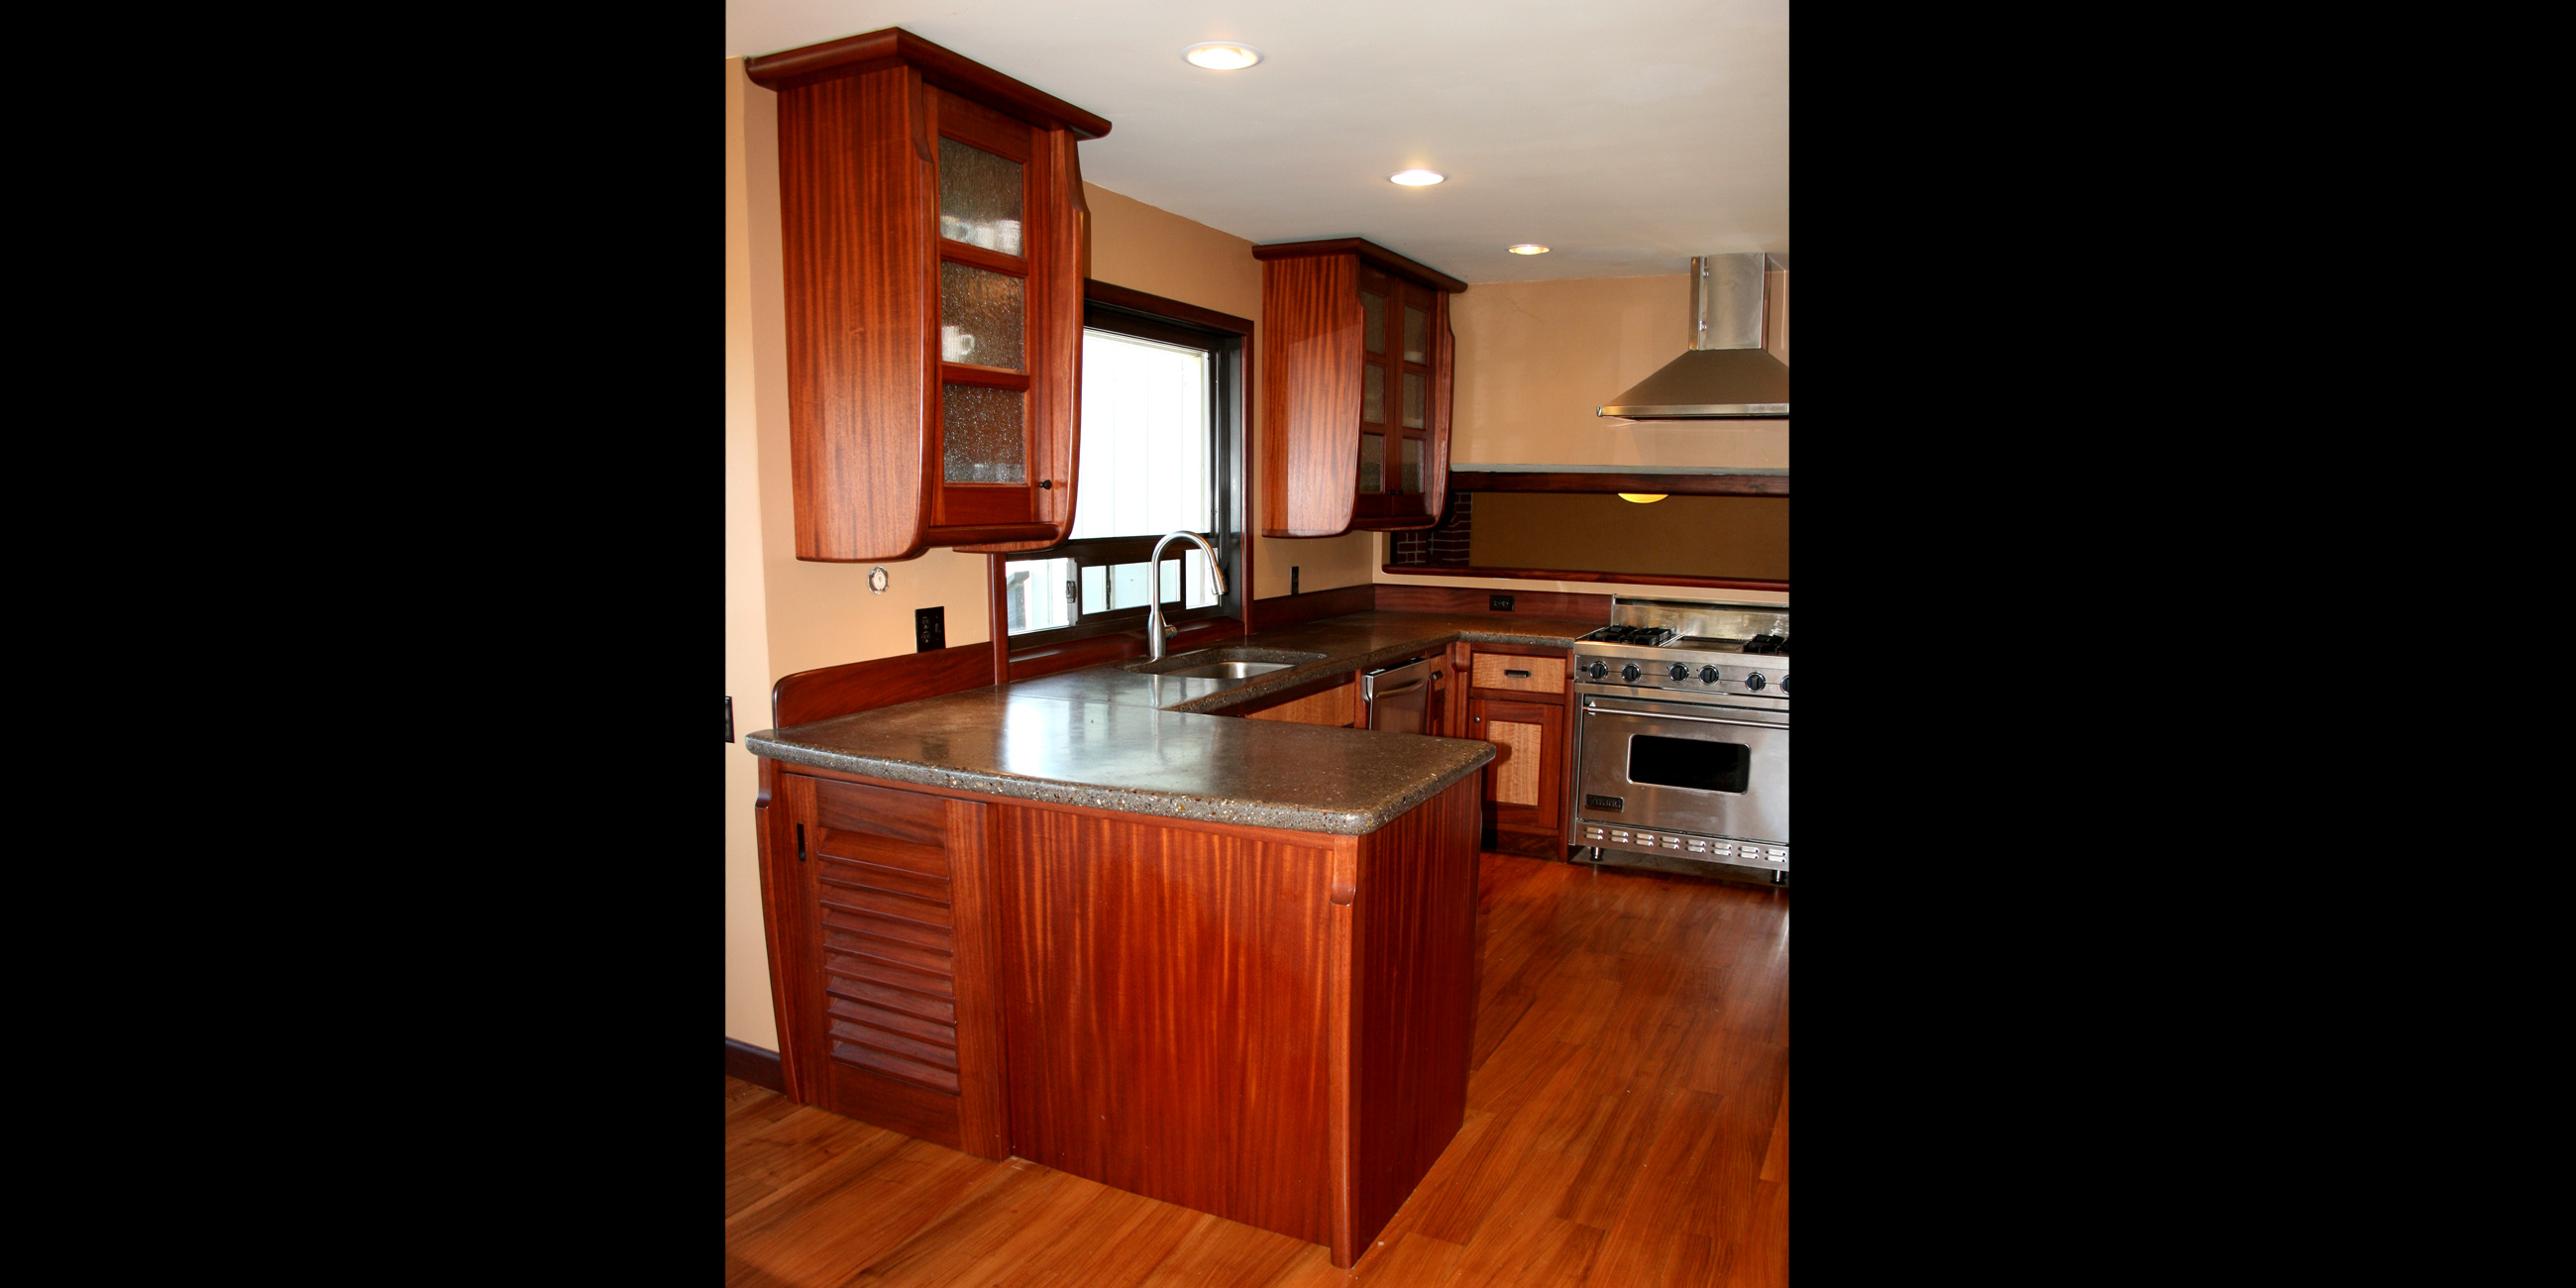 83_cotati_kitchen_home_page